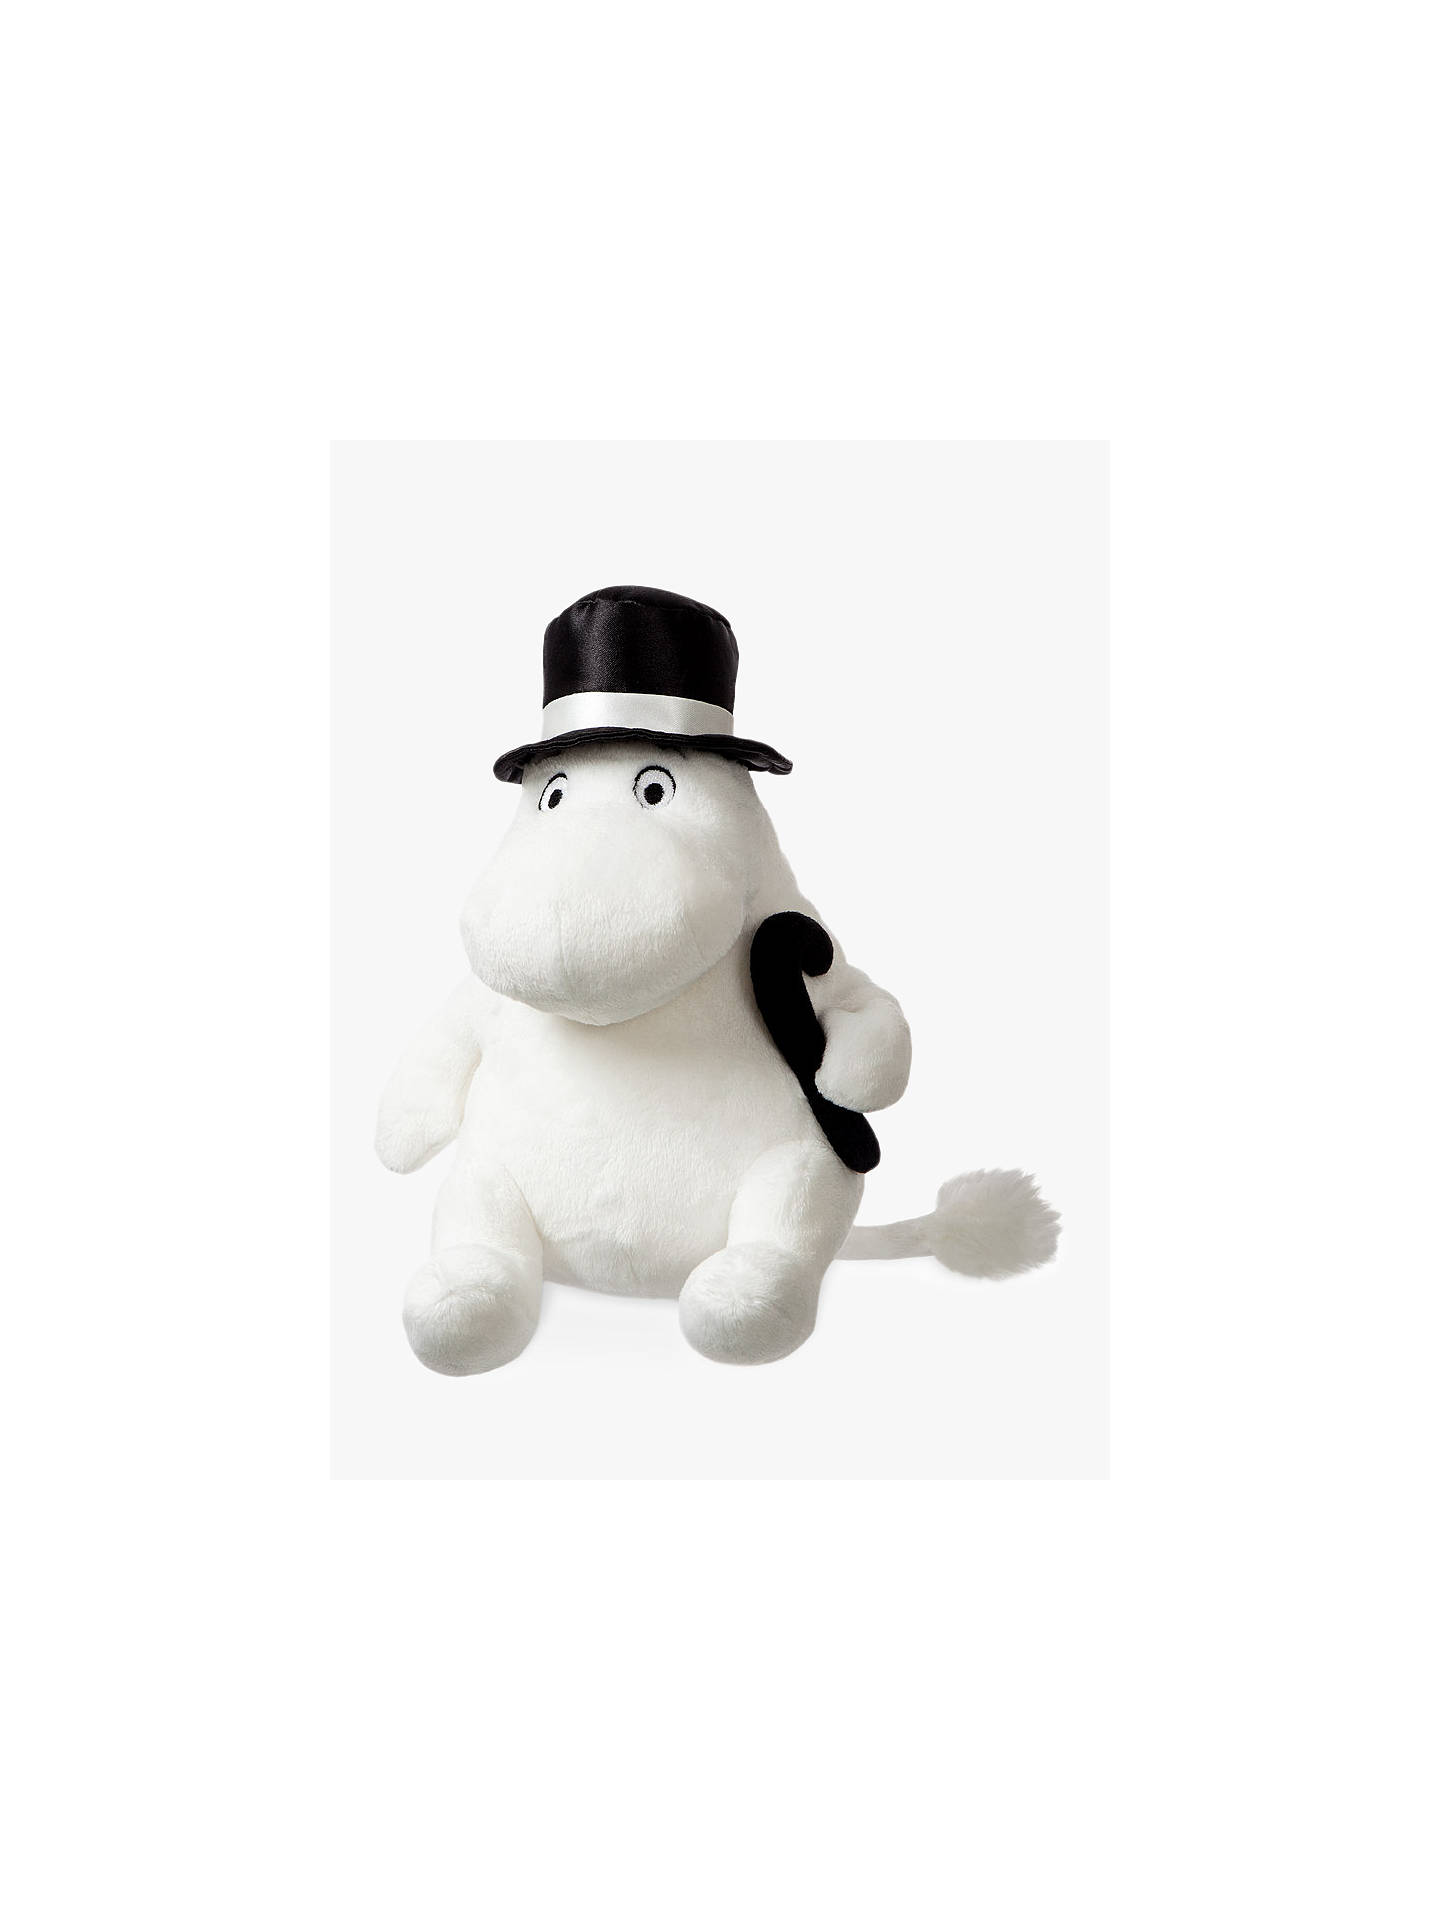 BuyThe Moomins Moominpappa Soft Toy Online at johnlewis.com